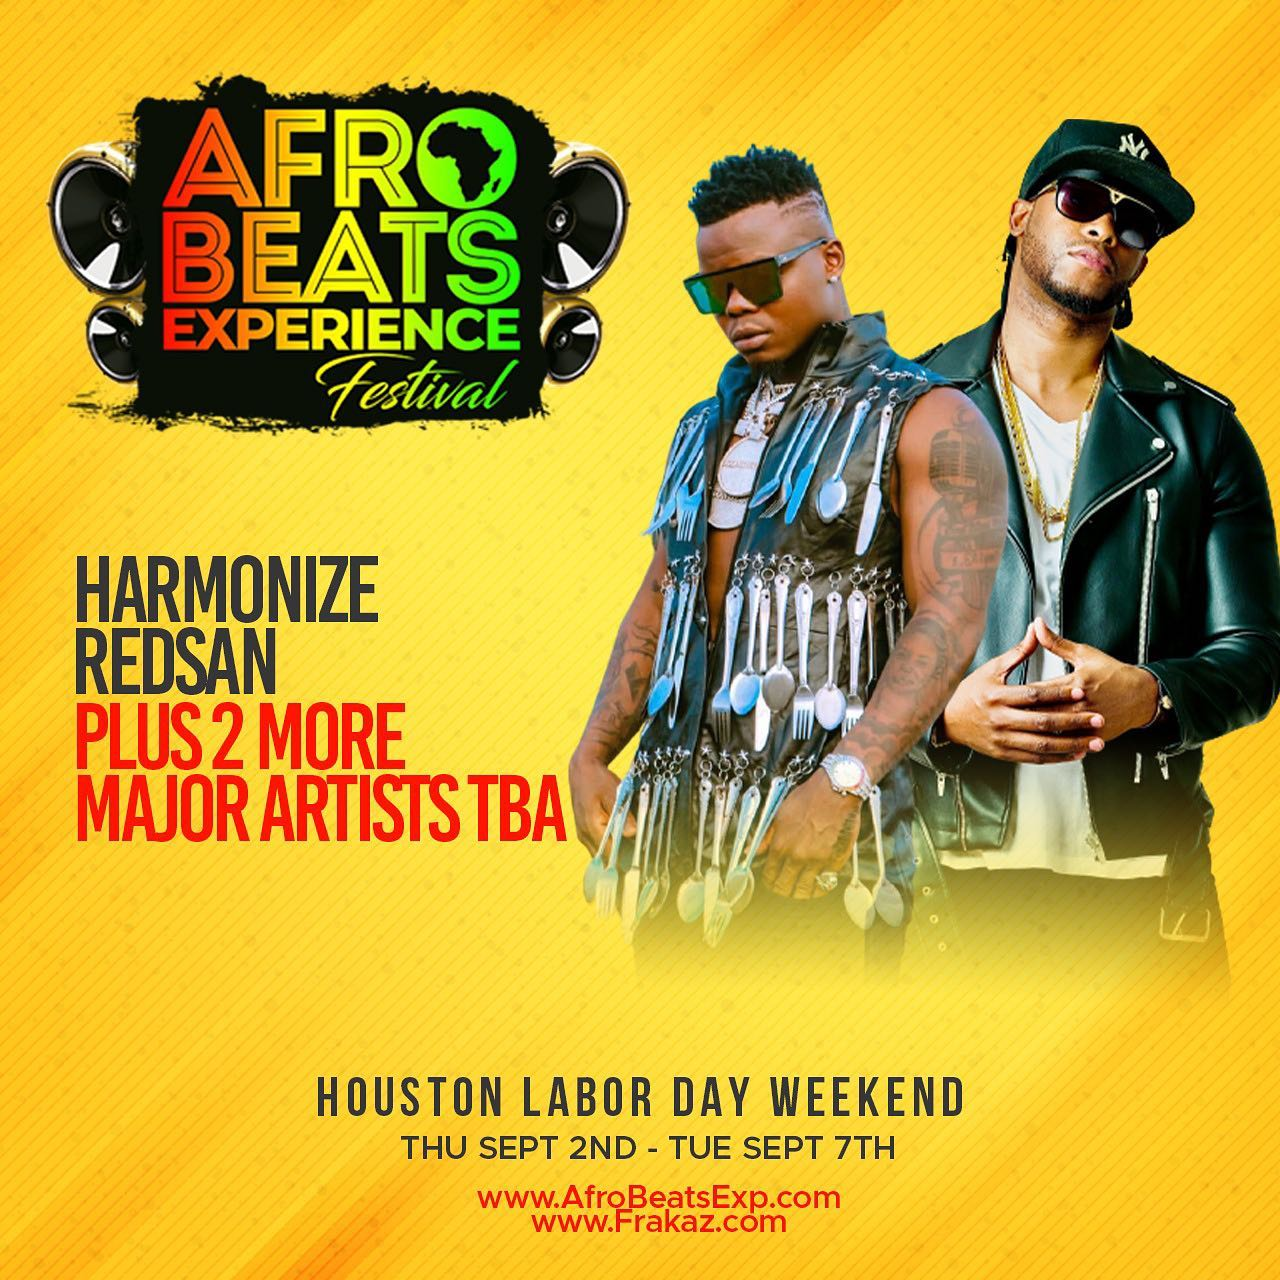 Harmonize and Redsan to Headline Houston's 5-day Afrobeat's Experience Festival During the Labor Day weekend.